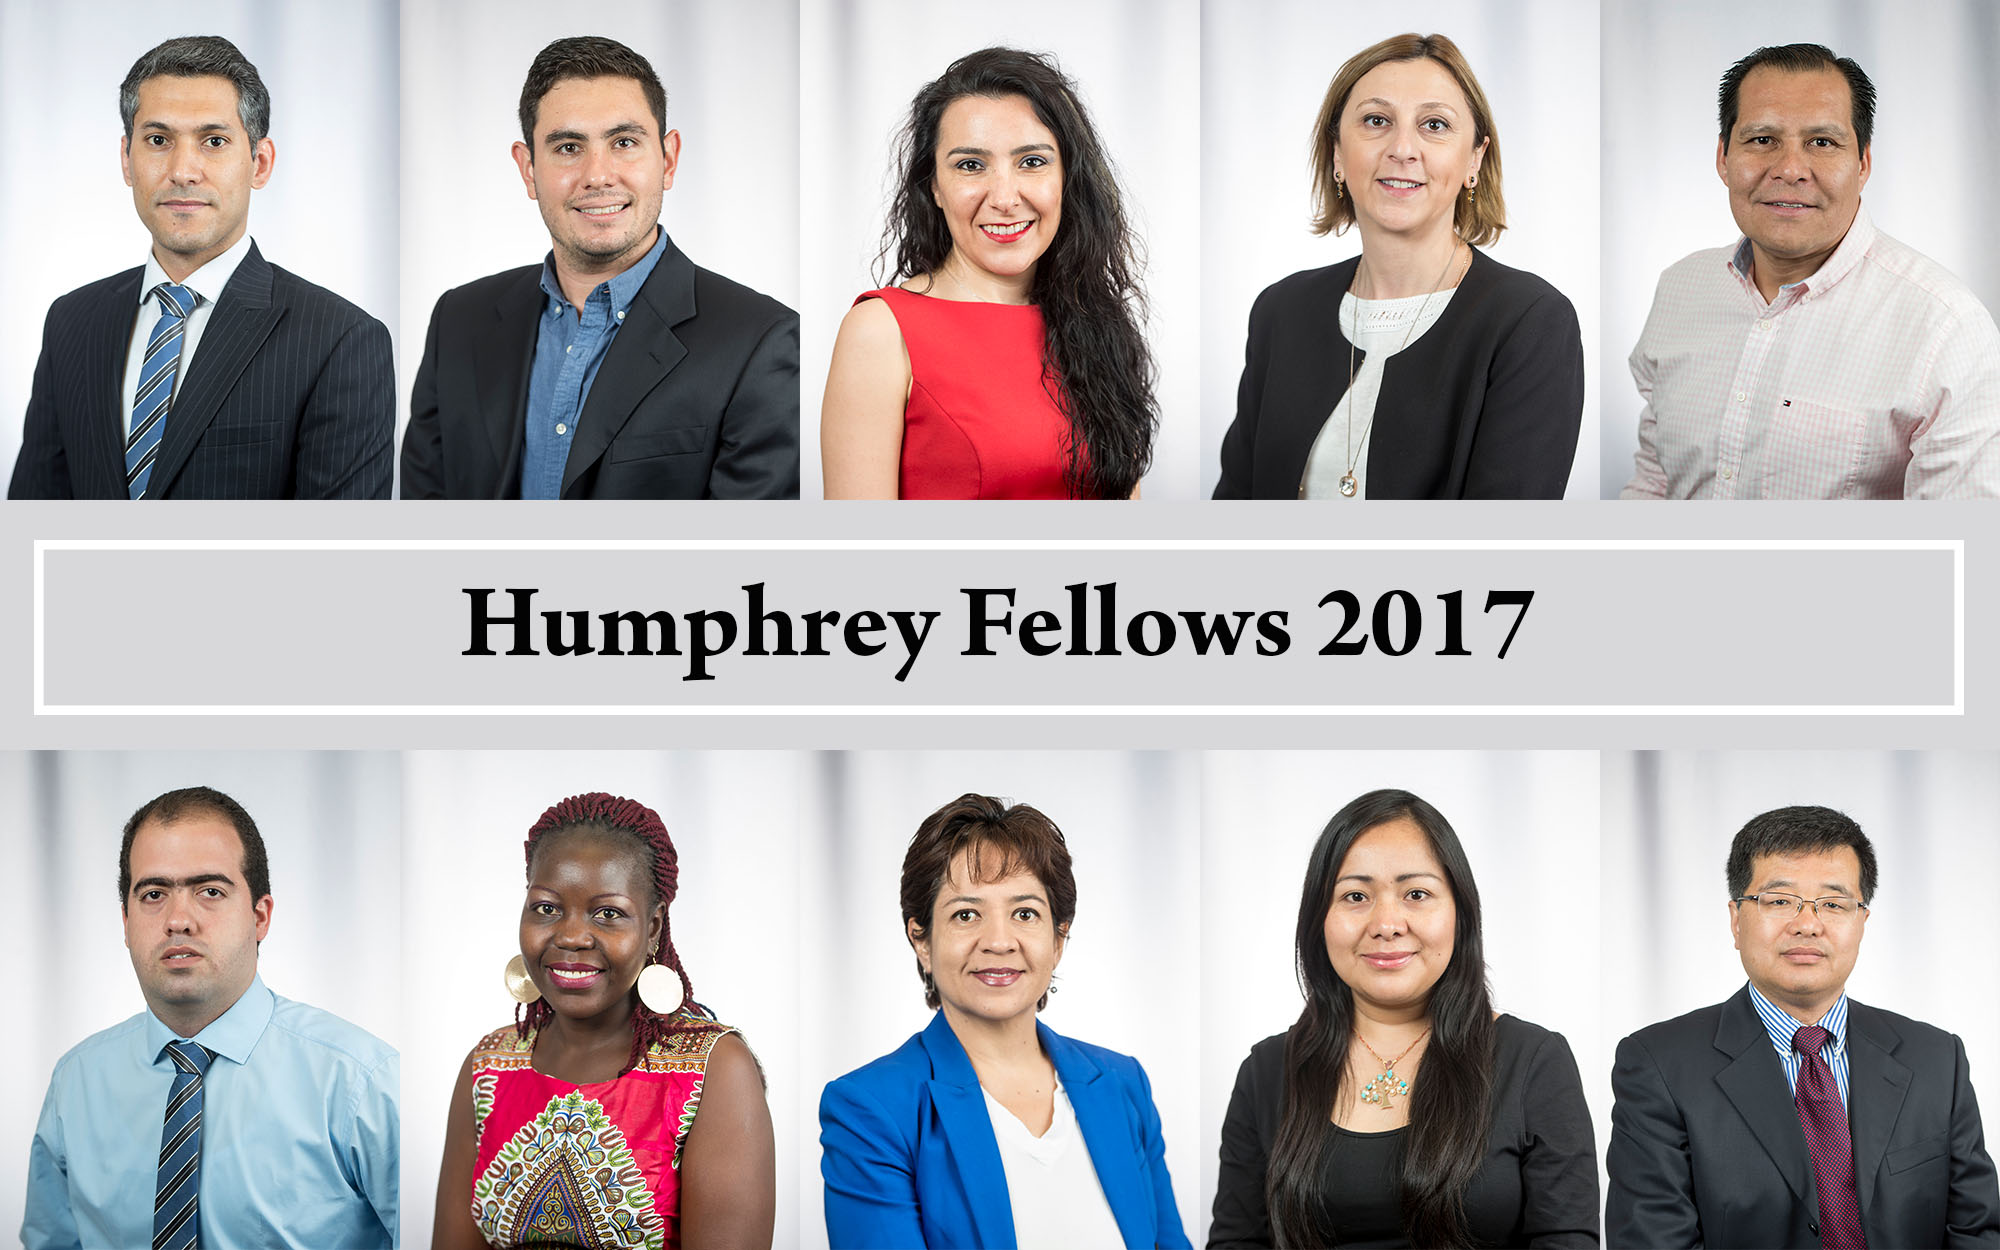 Compilation of 2017 Humphrey Fellows headshots